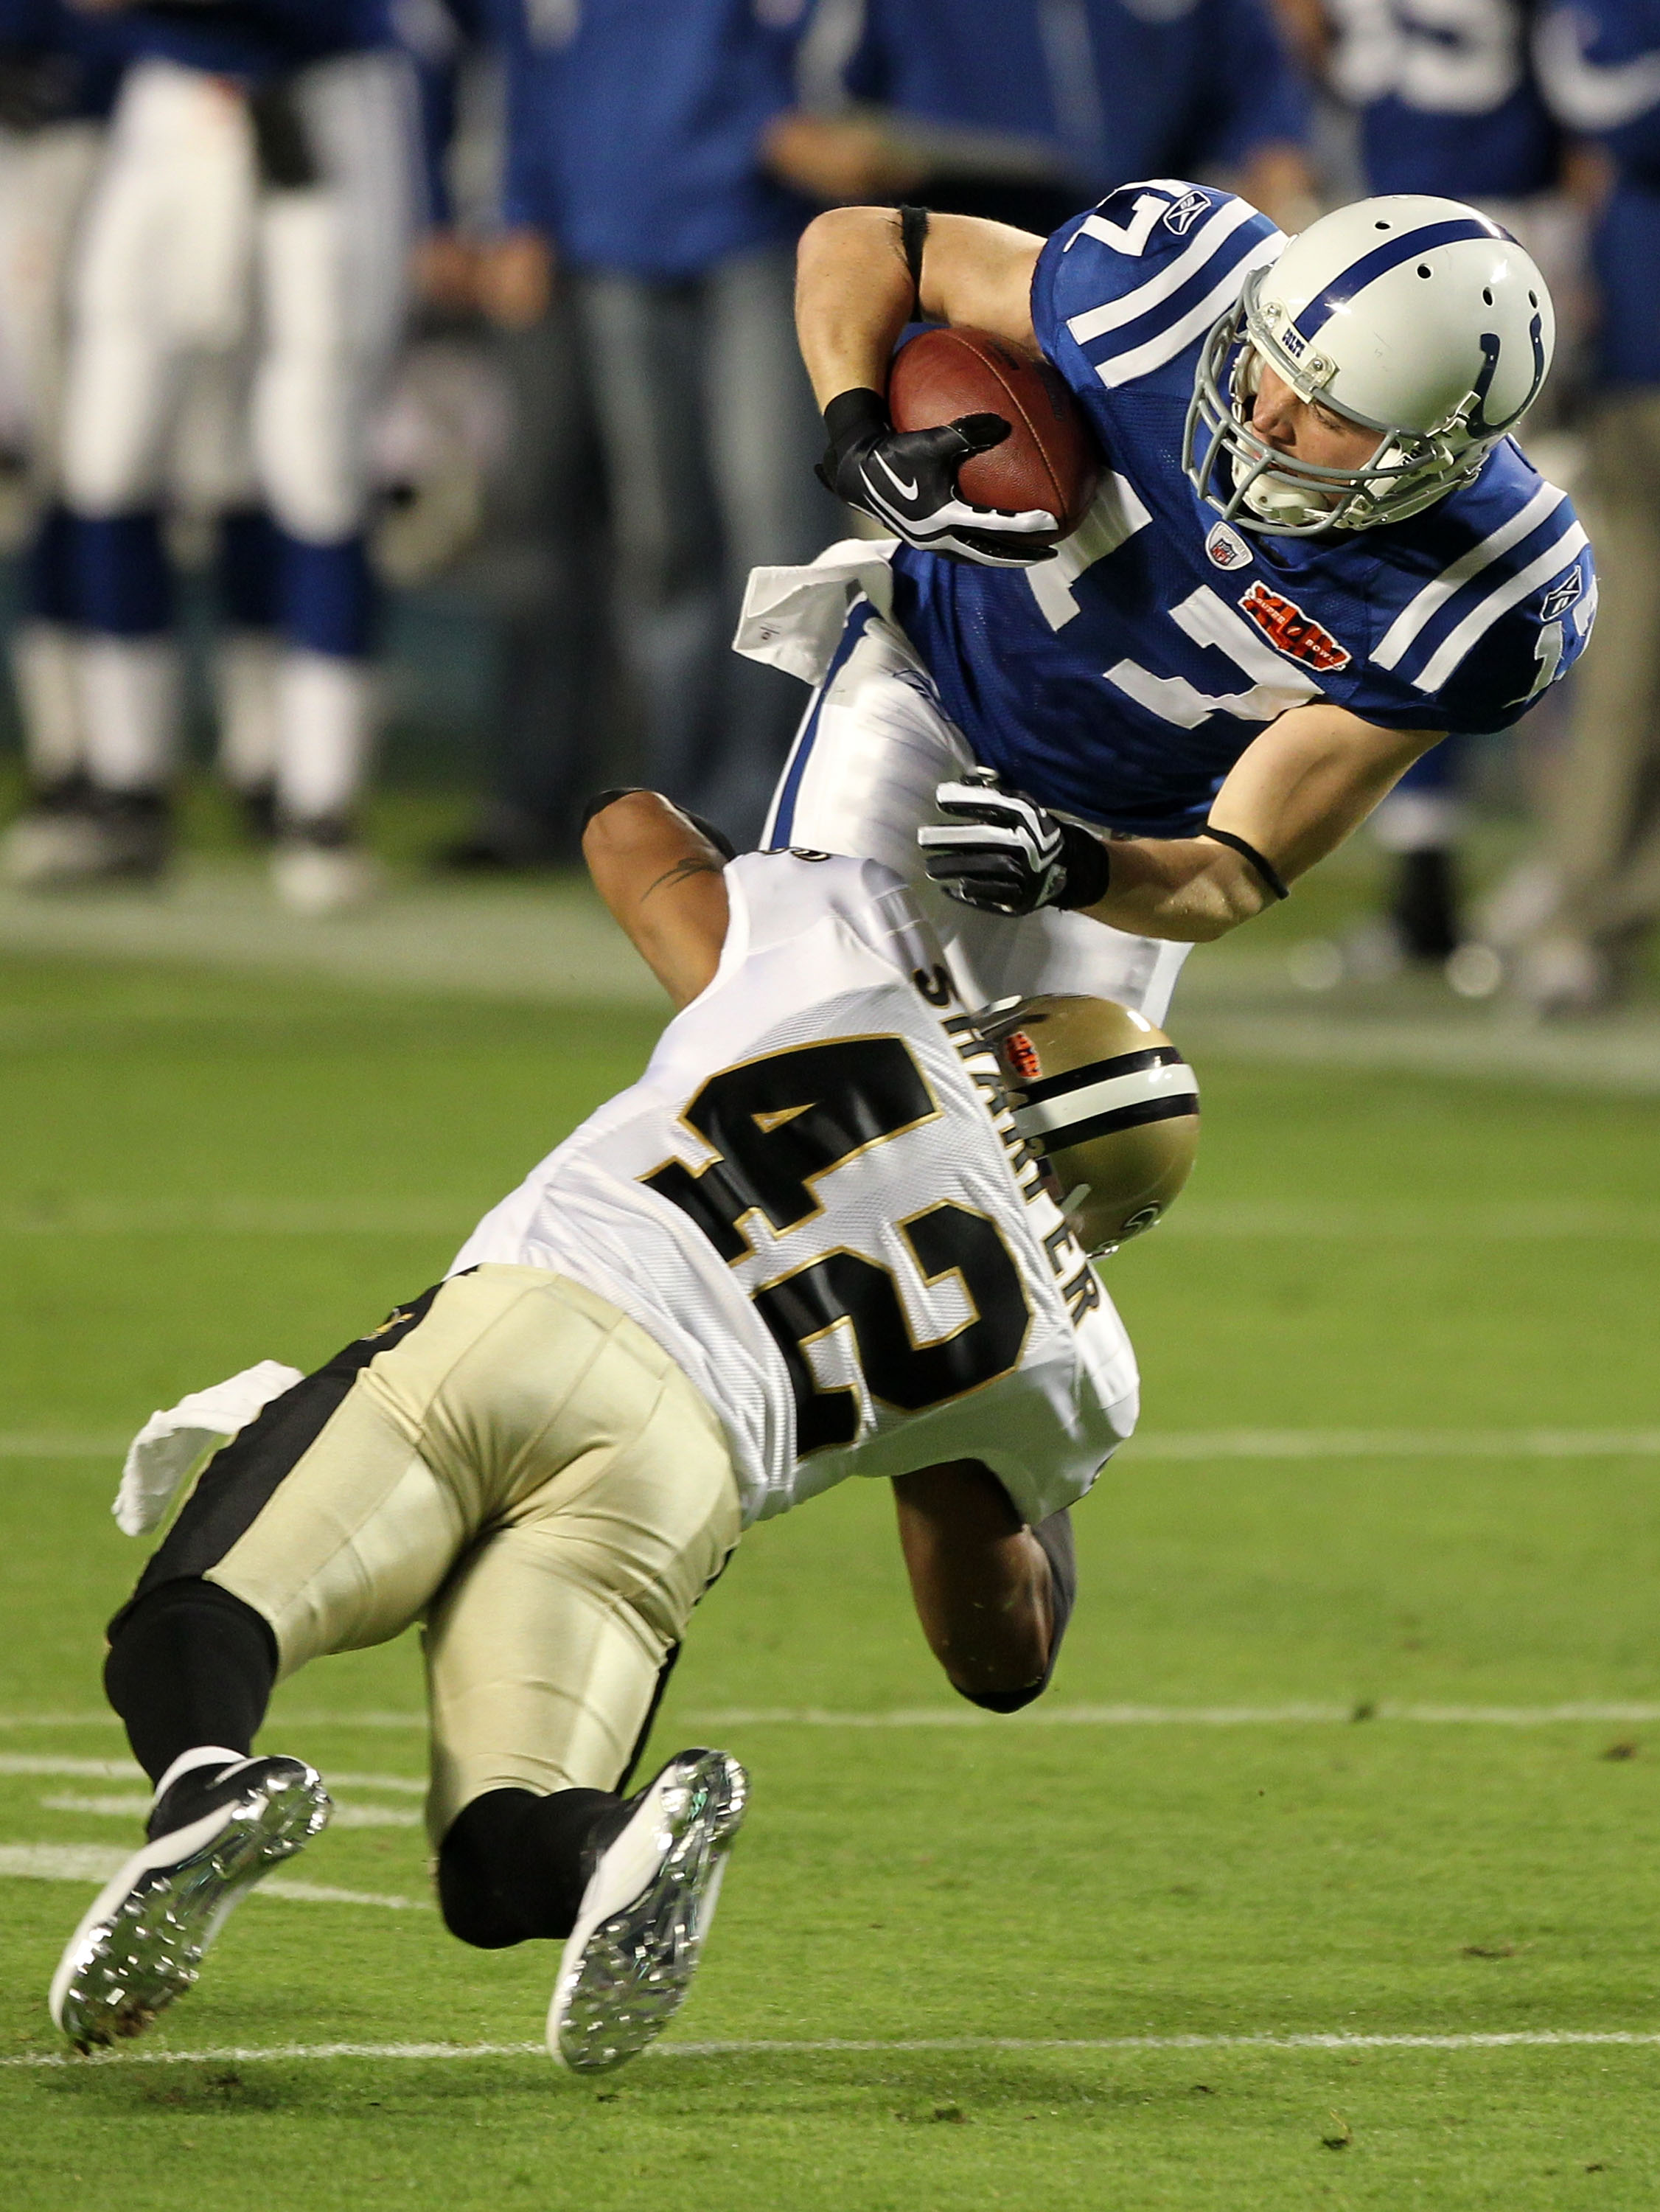 MIAMI GARDENS, FL - FEBRUARY 07:   Austin Collie #17 of the Indianapolis Colts is tacked after making a catch by Darren Sharper #42 of the New Orleans Saints during Super Bowl XLIV on February 7, 2010 at Sun Life Stadium in Miami Gardens, Florida.  (Photo